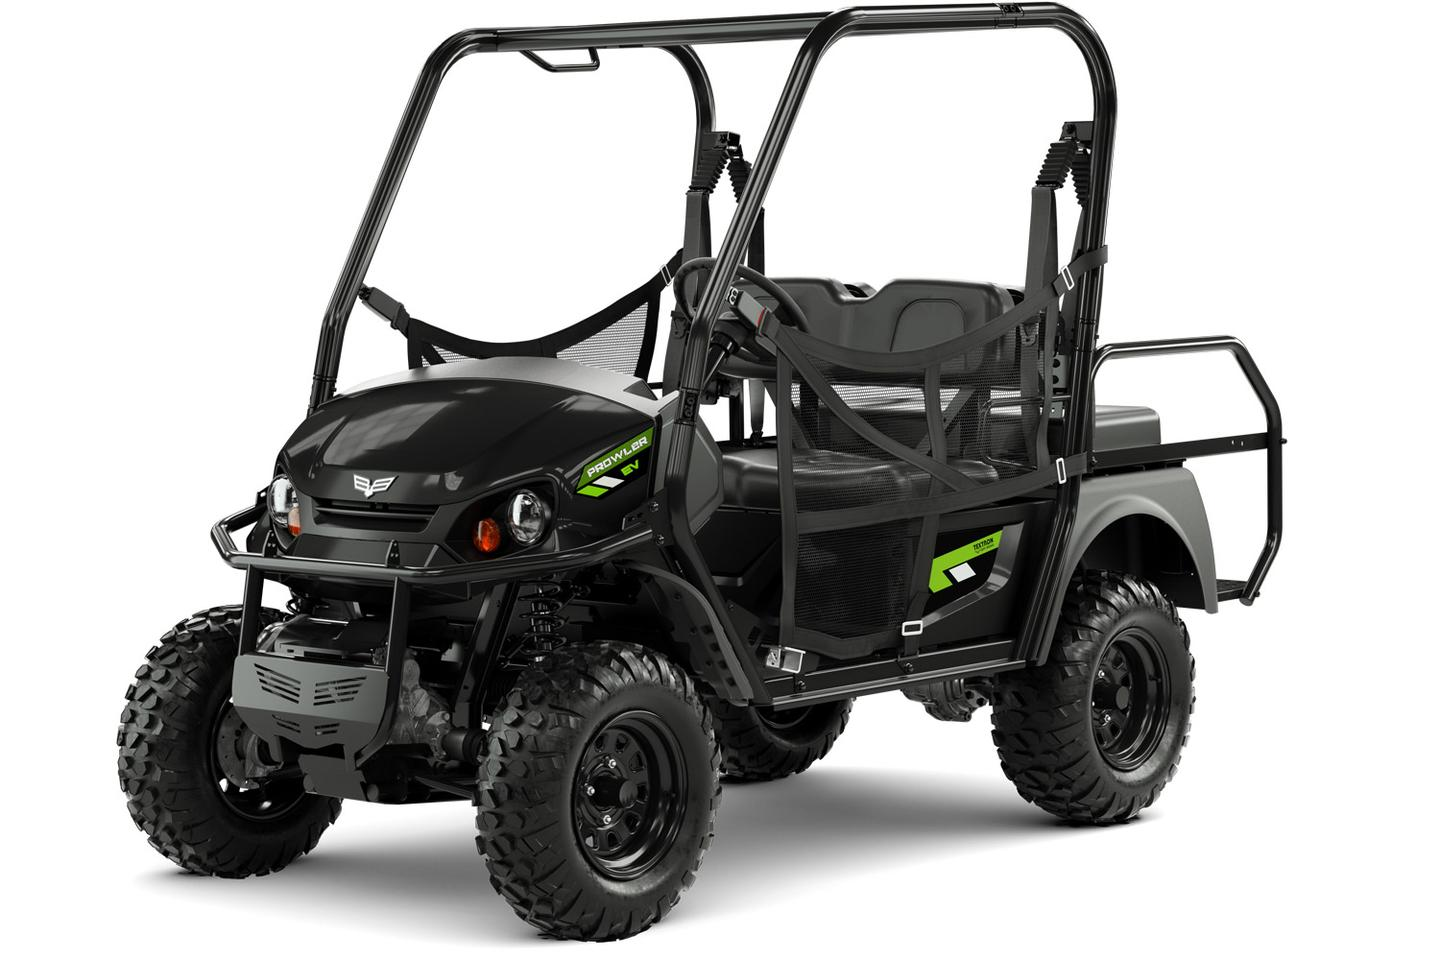 The 2018 Textron Off-Road Prowler EV in solid black color